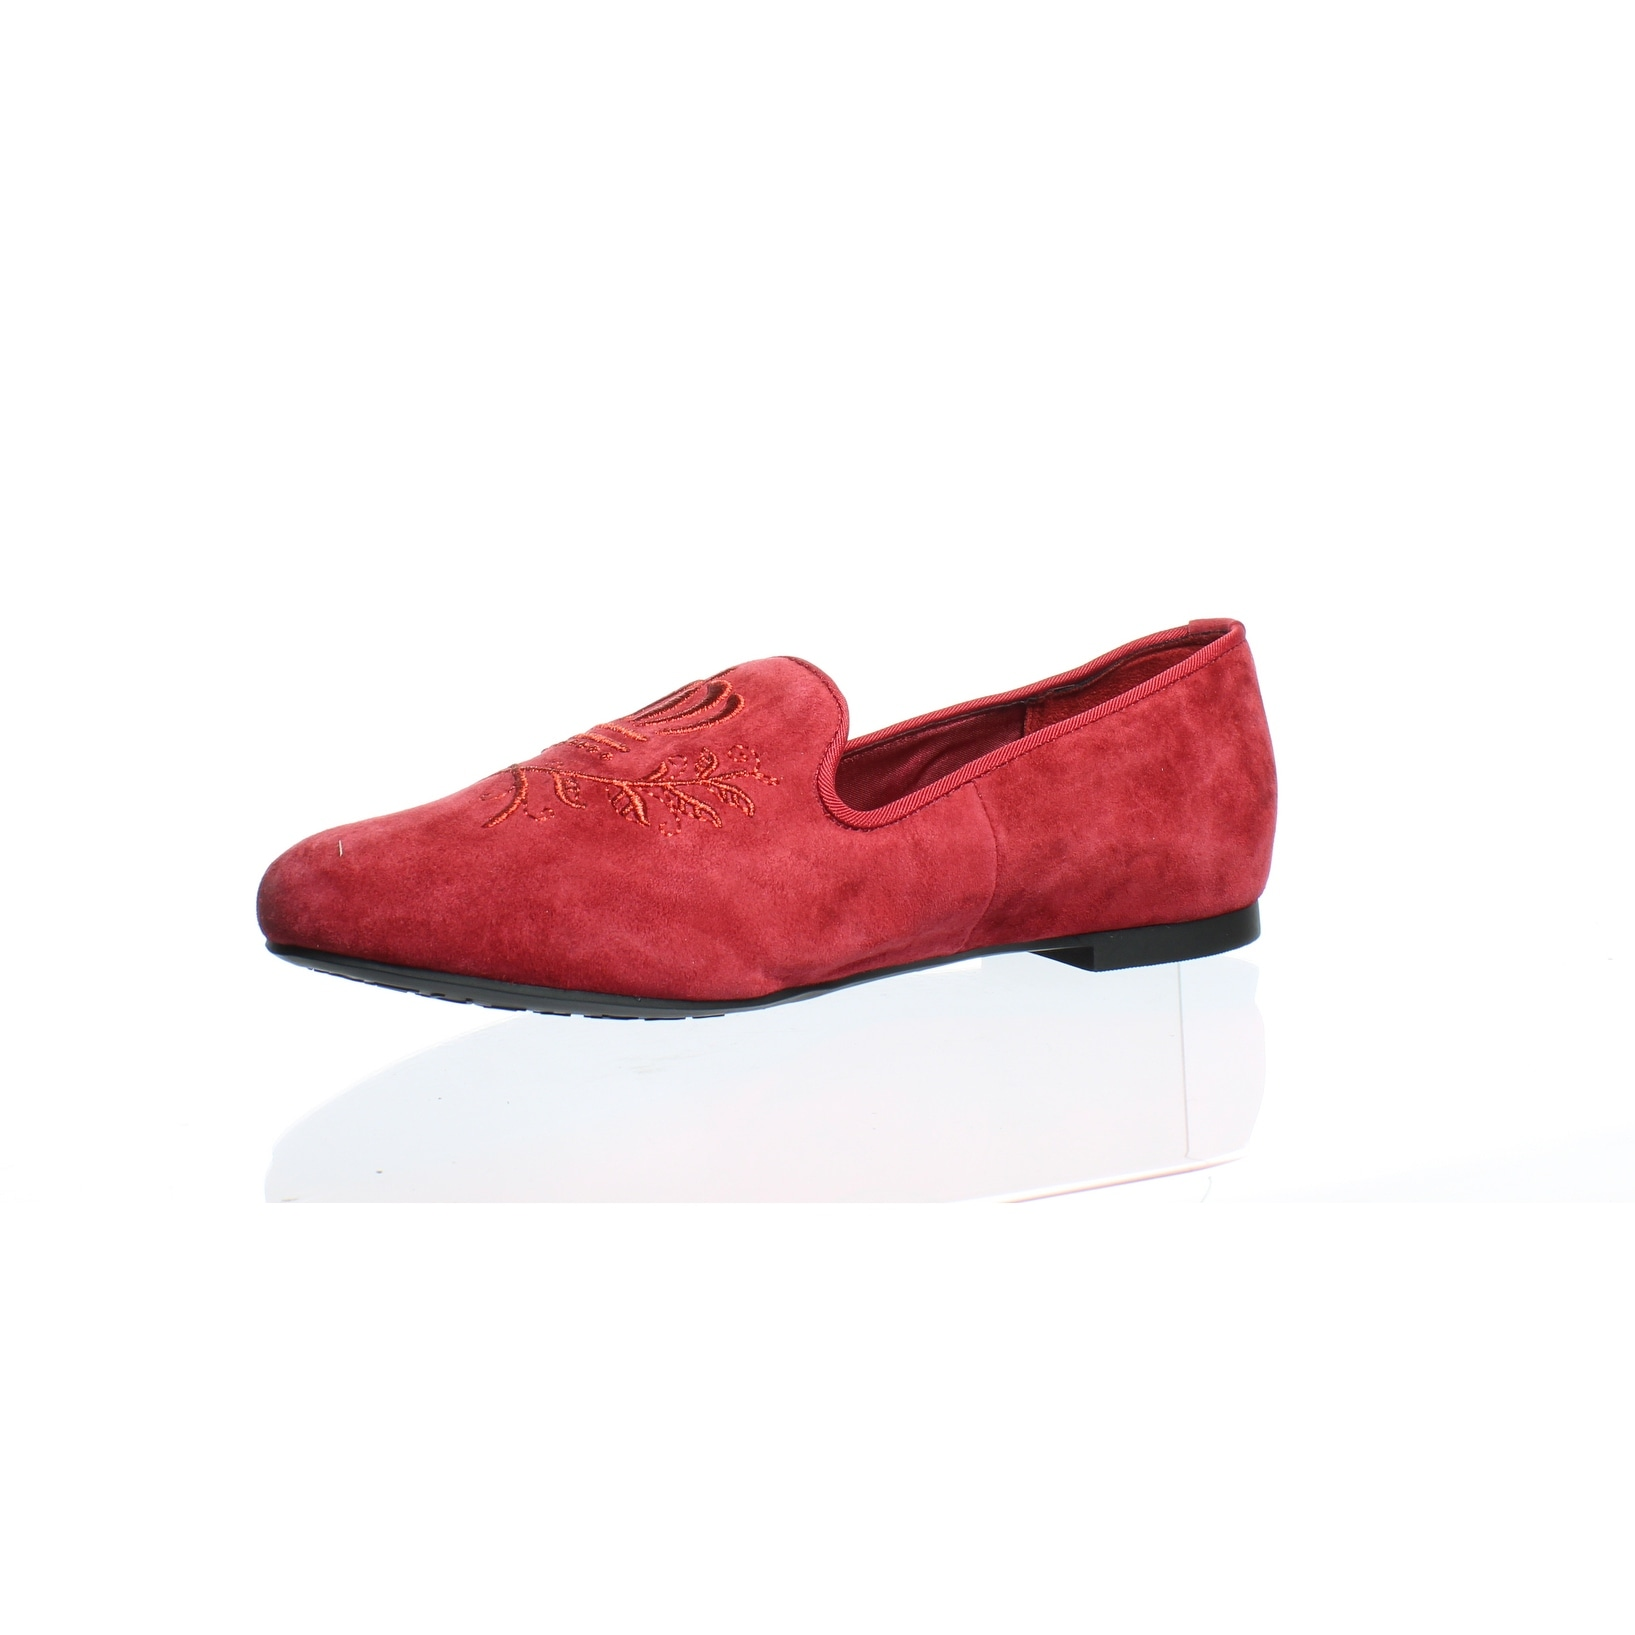 75fbf99aa75 Shop Vionic Womens Romi Rosso Loafers Size 9 - Free Shipping Today -  Overstock - 24227444